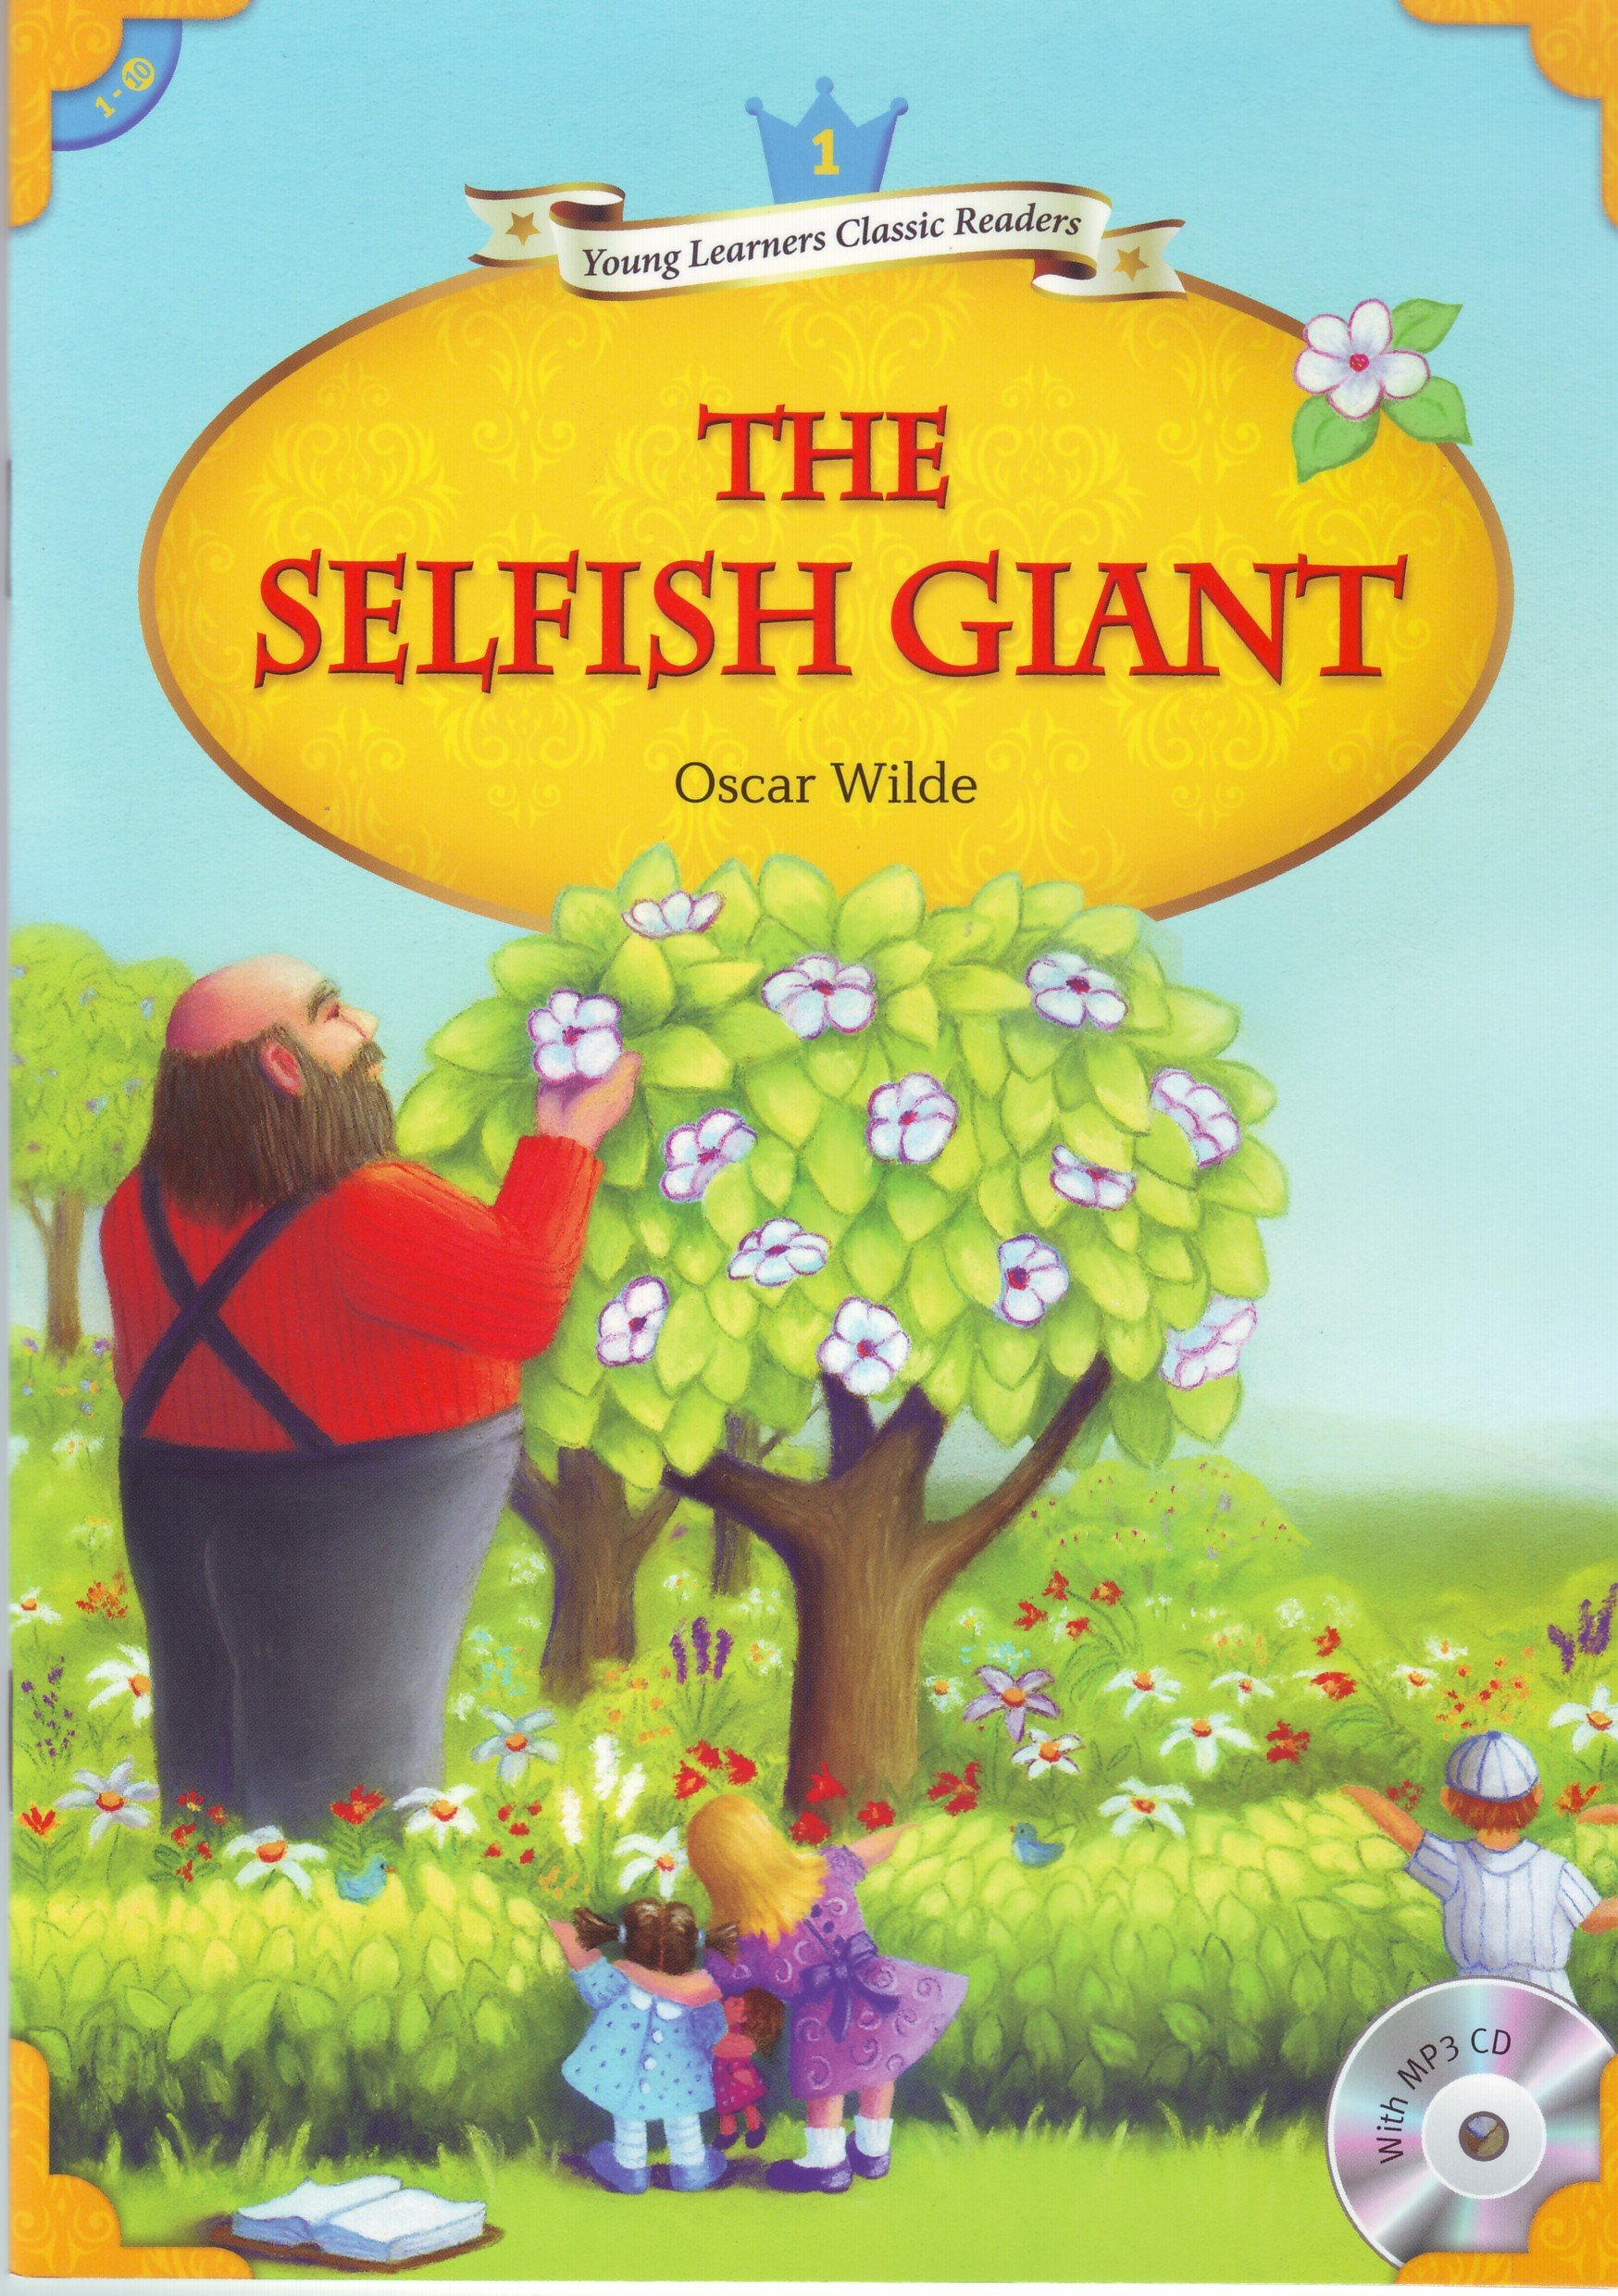 Download Young Learners Classic Readers: The Selfish Giant (Beginning Level 1 w/MP3 Audio CD) ebook